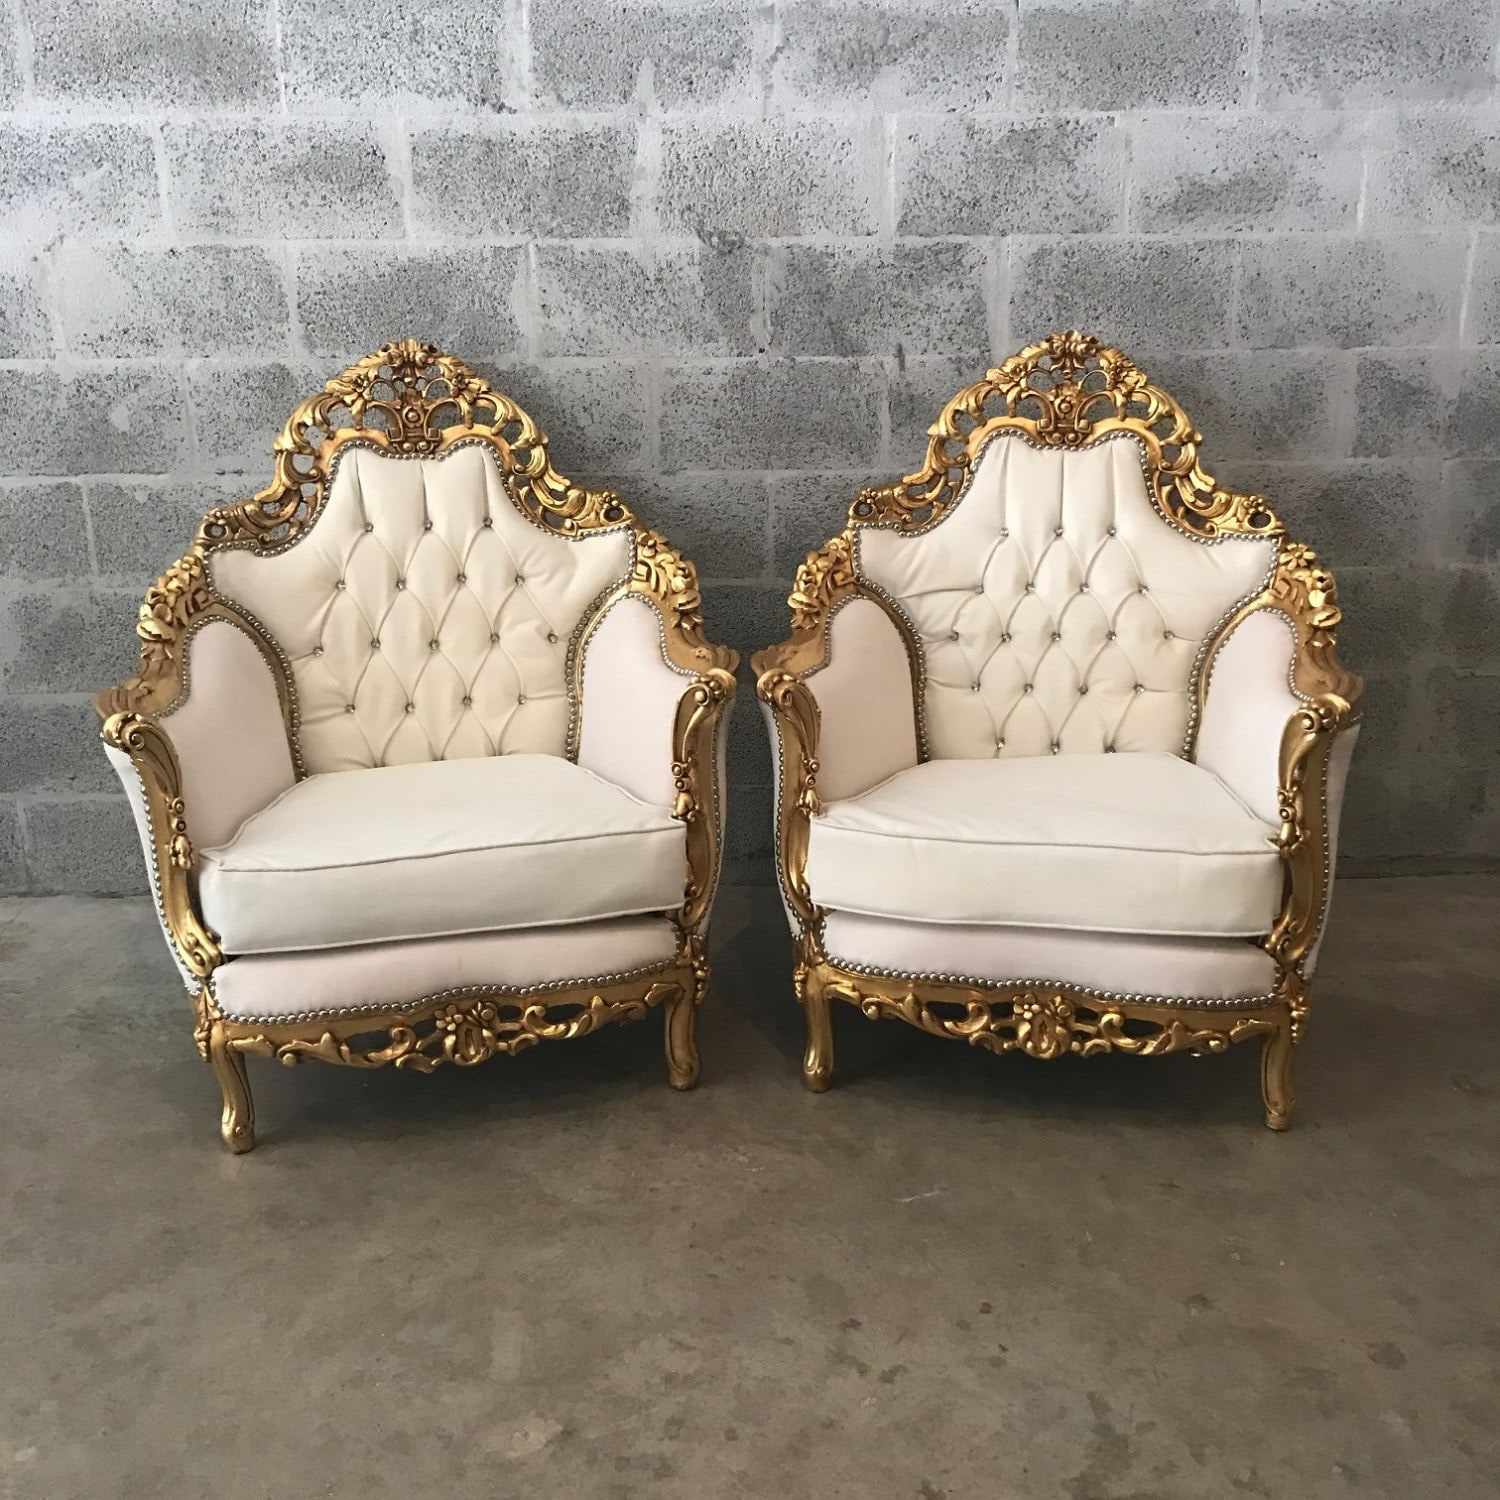 Antique italian chairs - Italian Antique Furniture Throne Chair Rococo Tufted Sofa 1 Chairs Left Tufted Chair White Leather W Nail Heads Baroque Tufted Chair